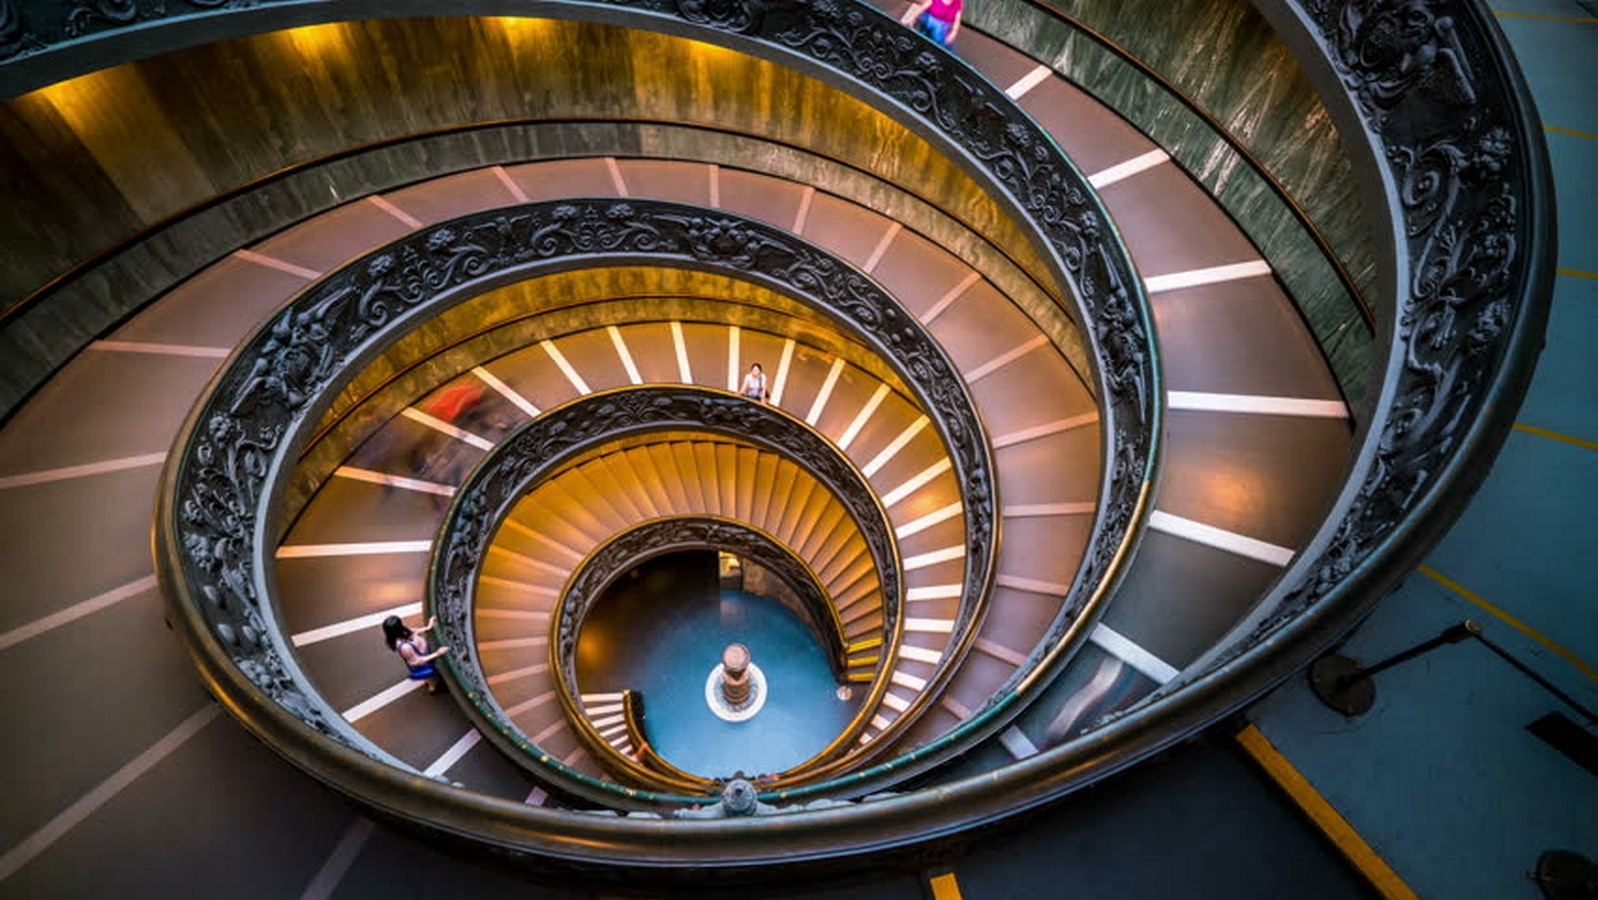 10 Things you did not know about Vatican Museums - Sheet11